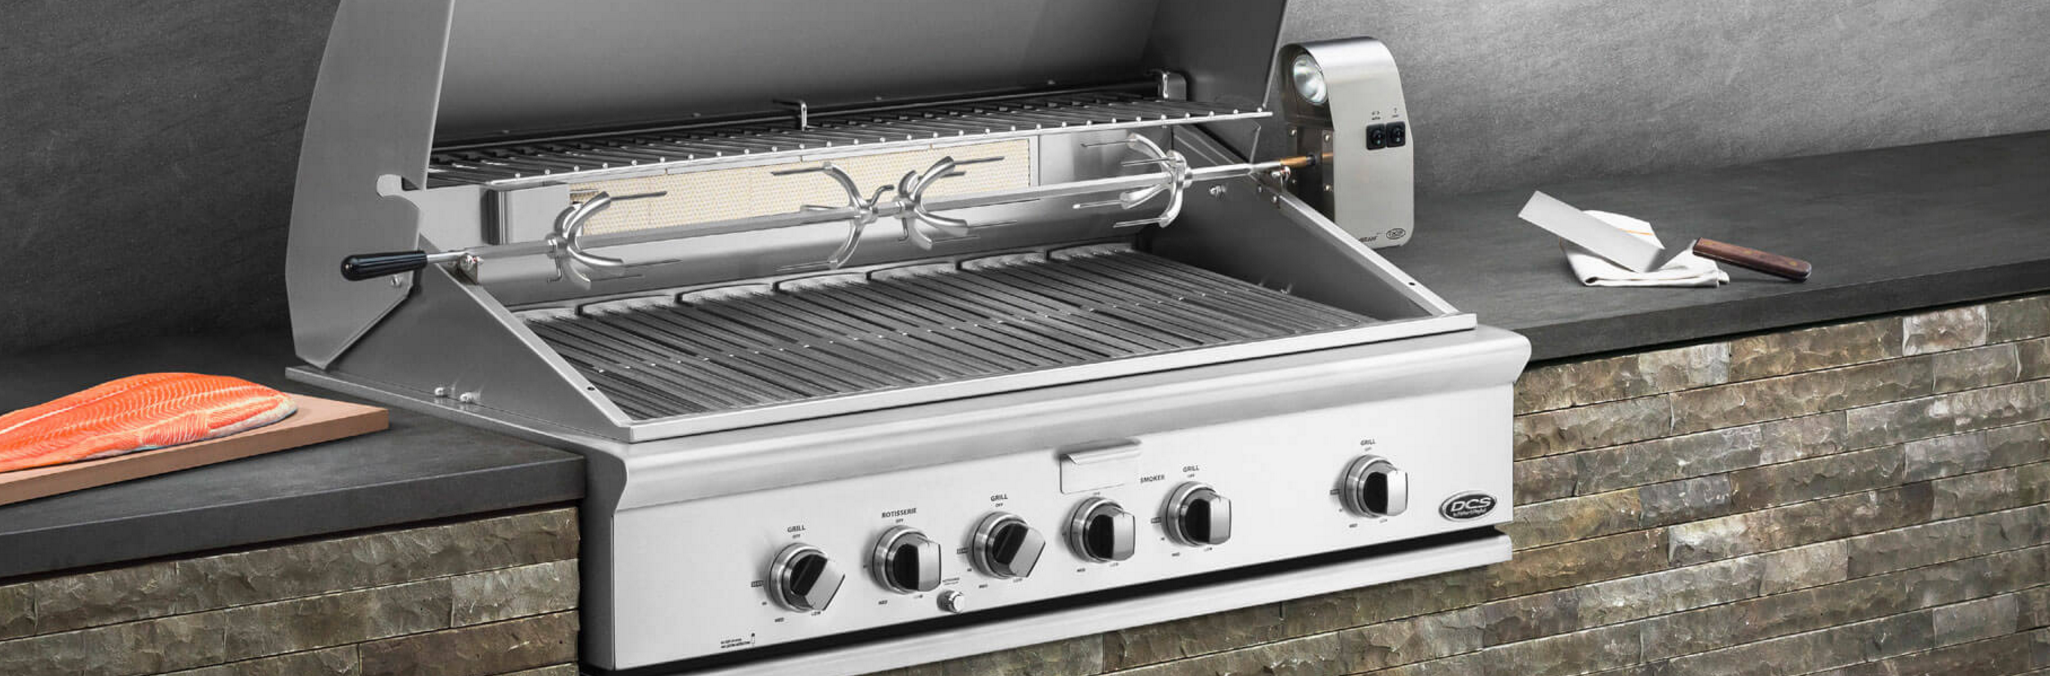 DCS Grills offers professional grade outdoor kitchen components for Hudson Valley homeowners serious about outdoor cooking. Photo: DCS Grills